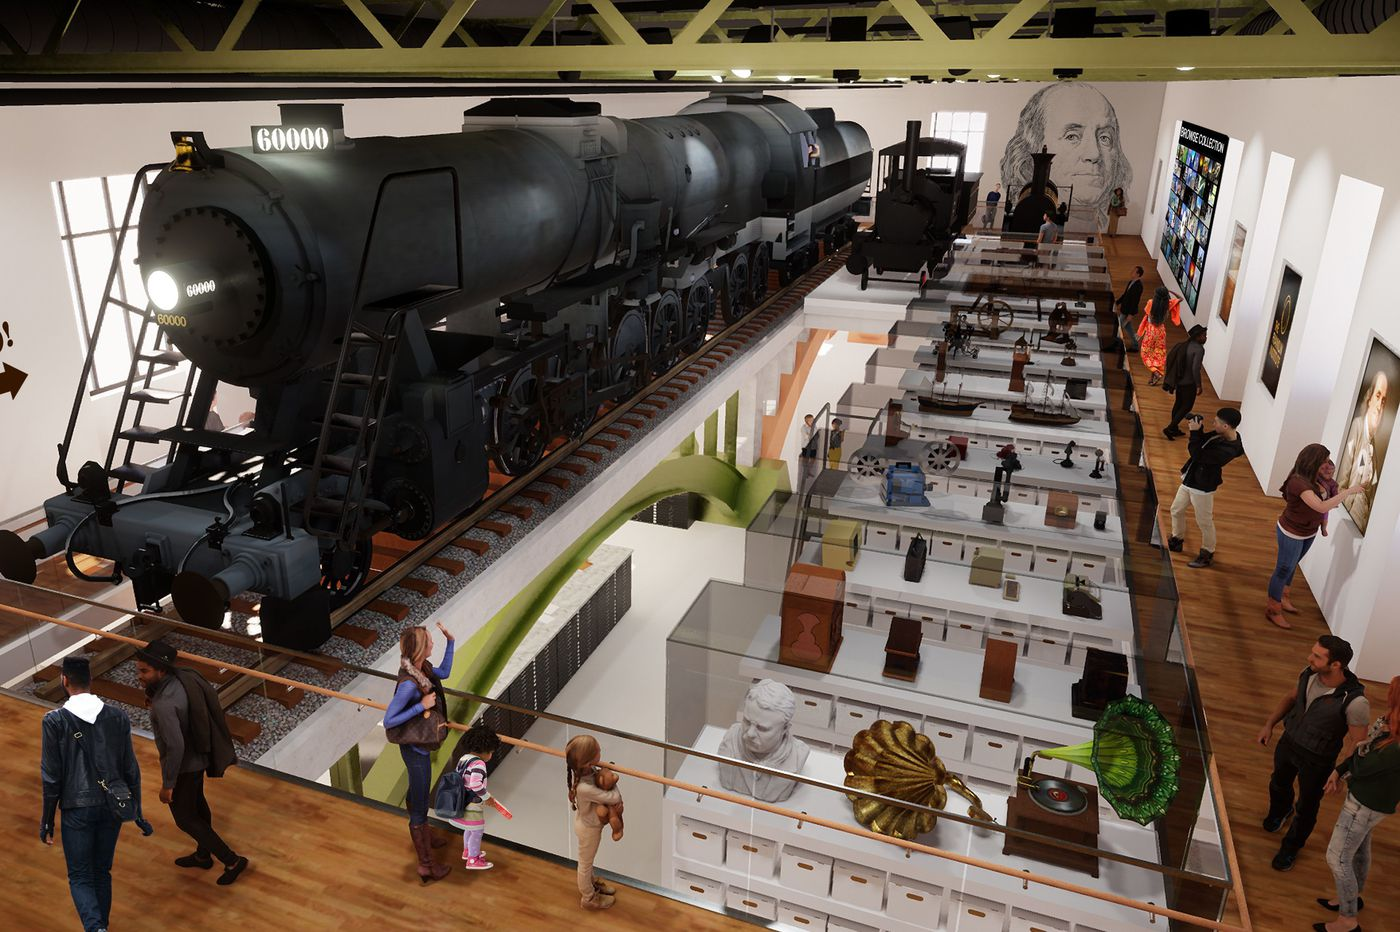 Franklin Institute locomotive is going to perch overhead in a $6 million train room renovation